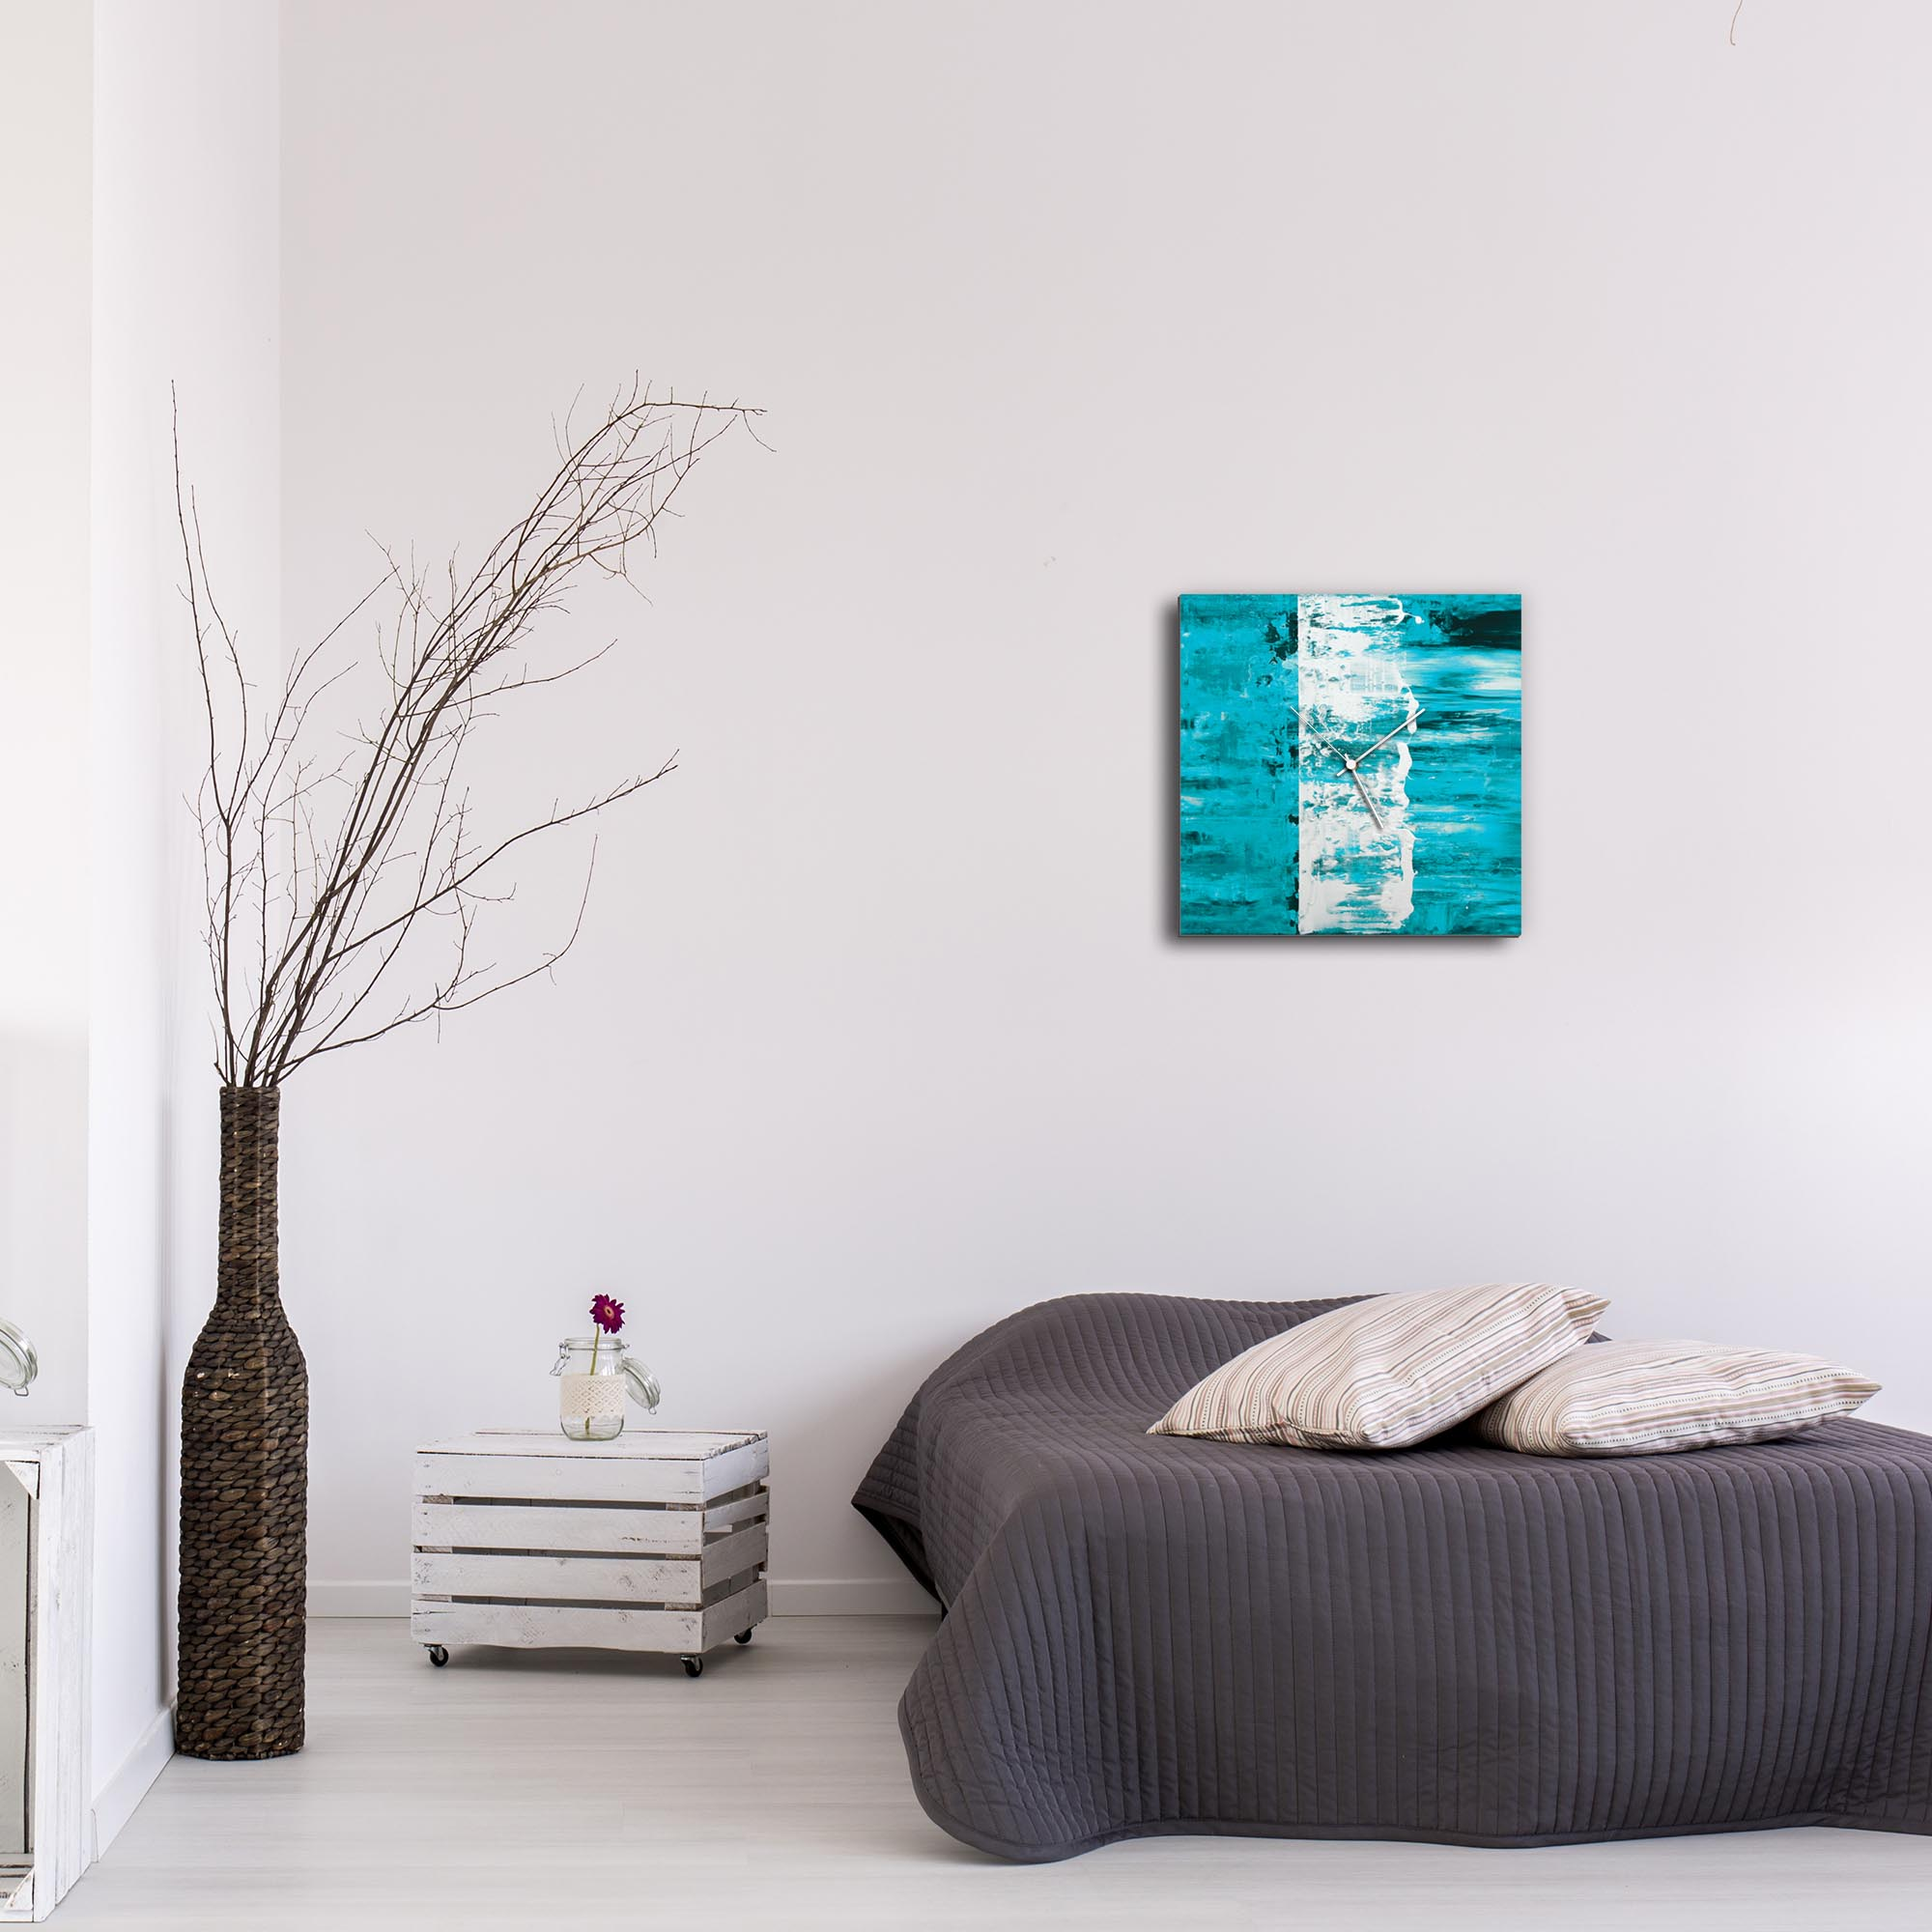 Teal Street Square Clock by Mendo Vasilevski - Urban Abstract Home Decor - Lifestyle View